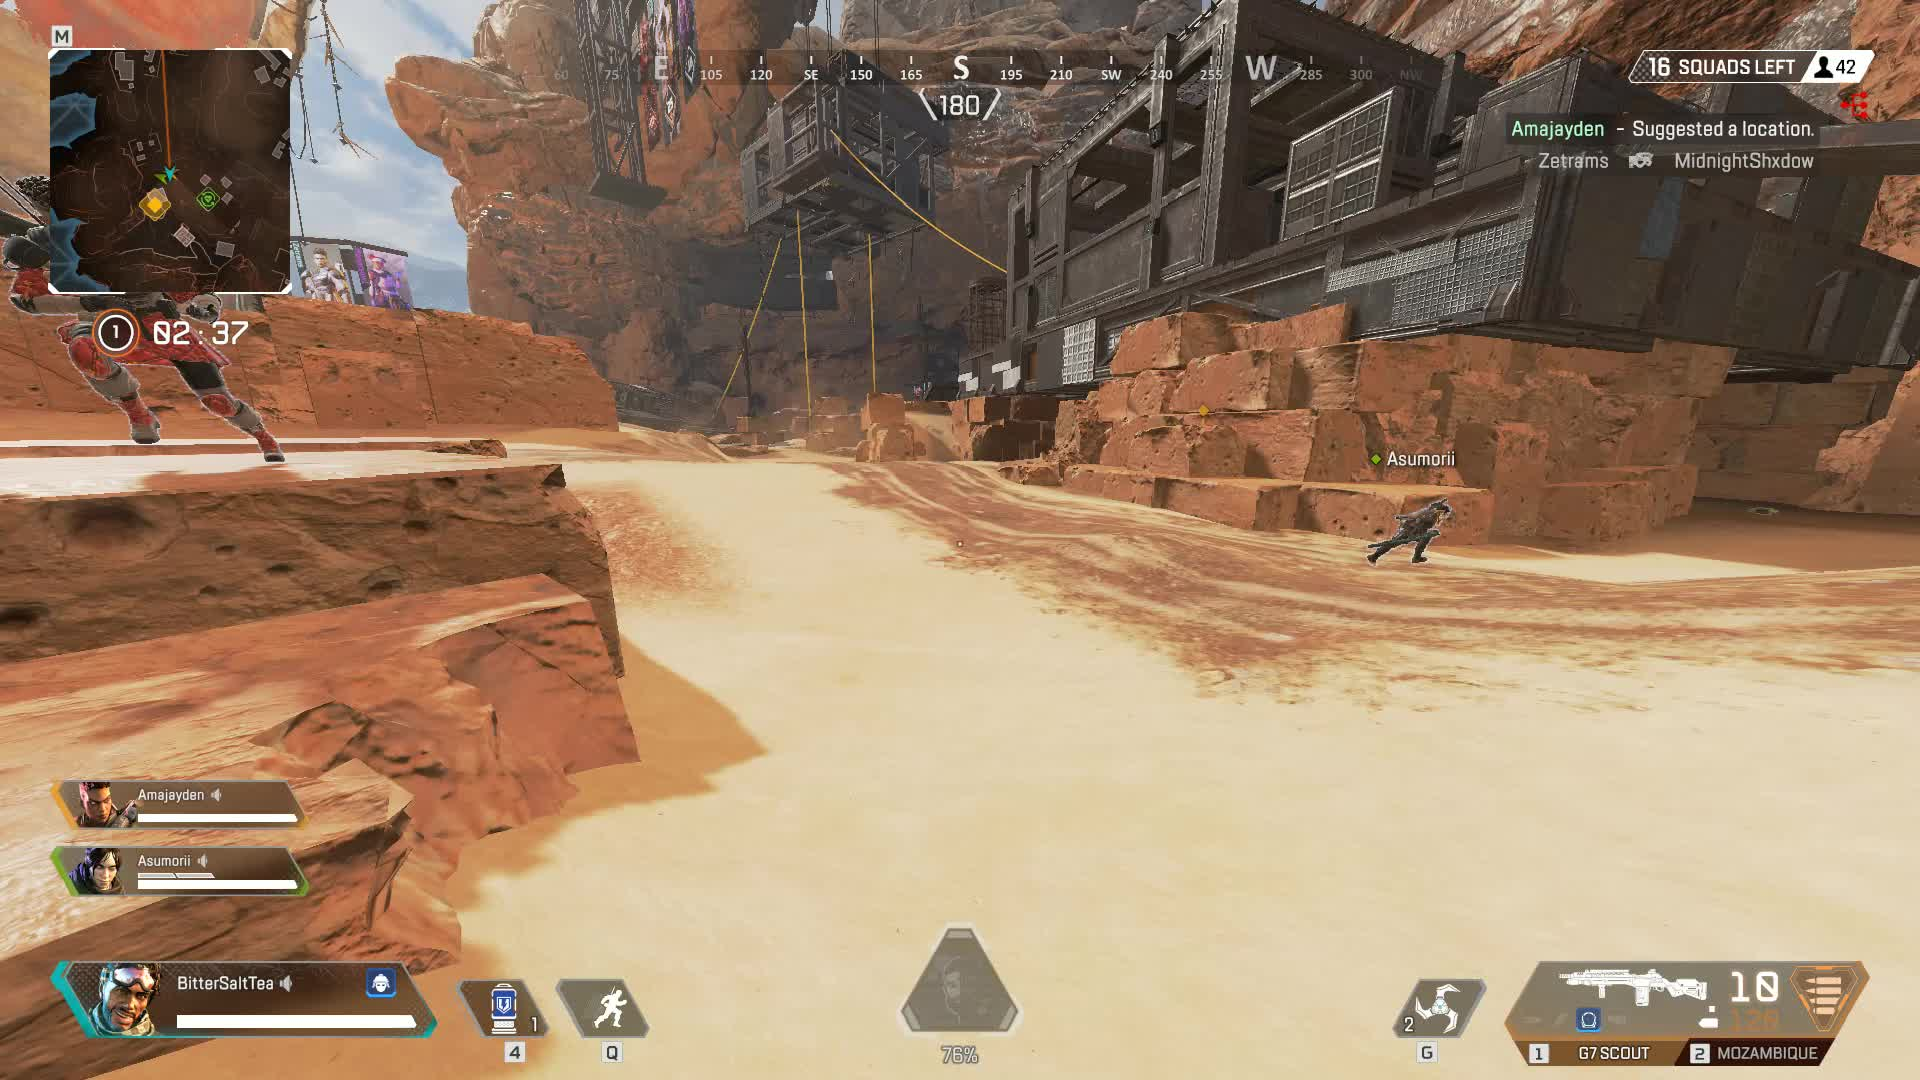 apexlegends, Apex Legends 2019.02.15 - 00.00.53.01 GIFs